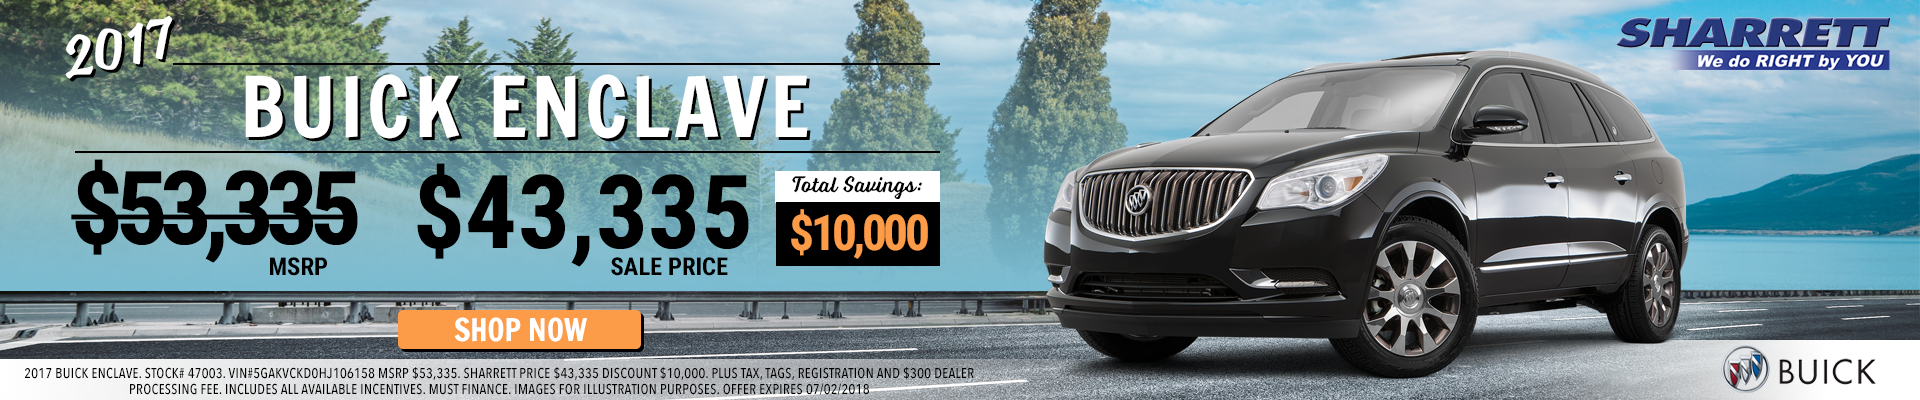 Save $10,000 on a 2017 Buick Enclave